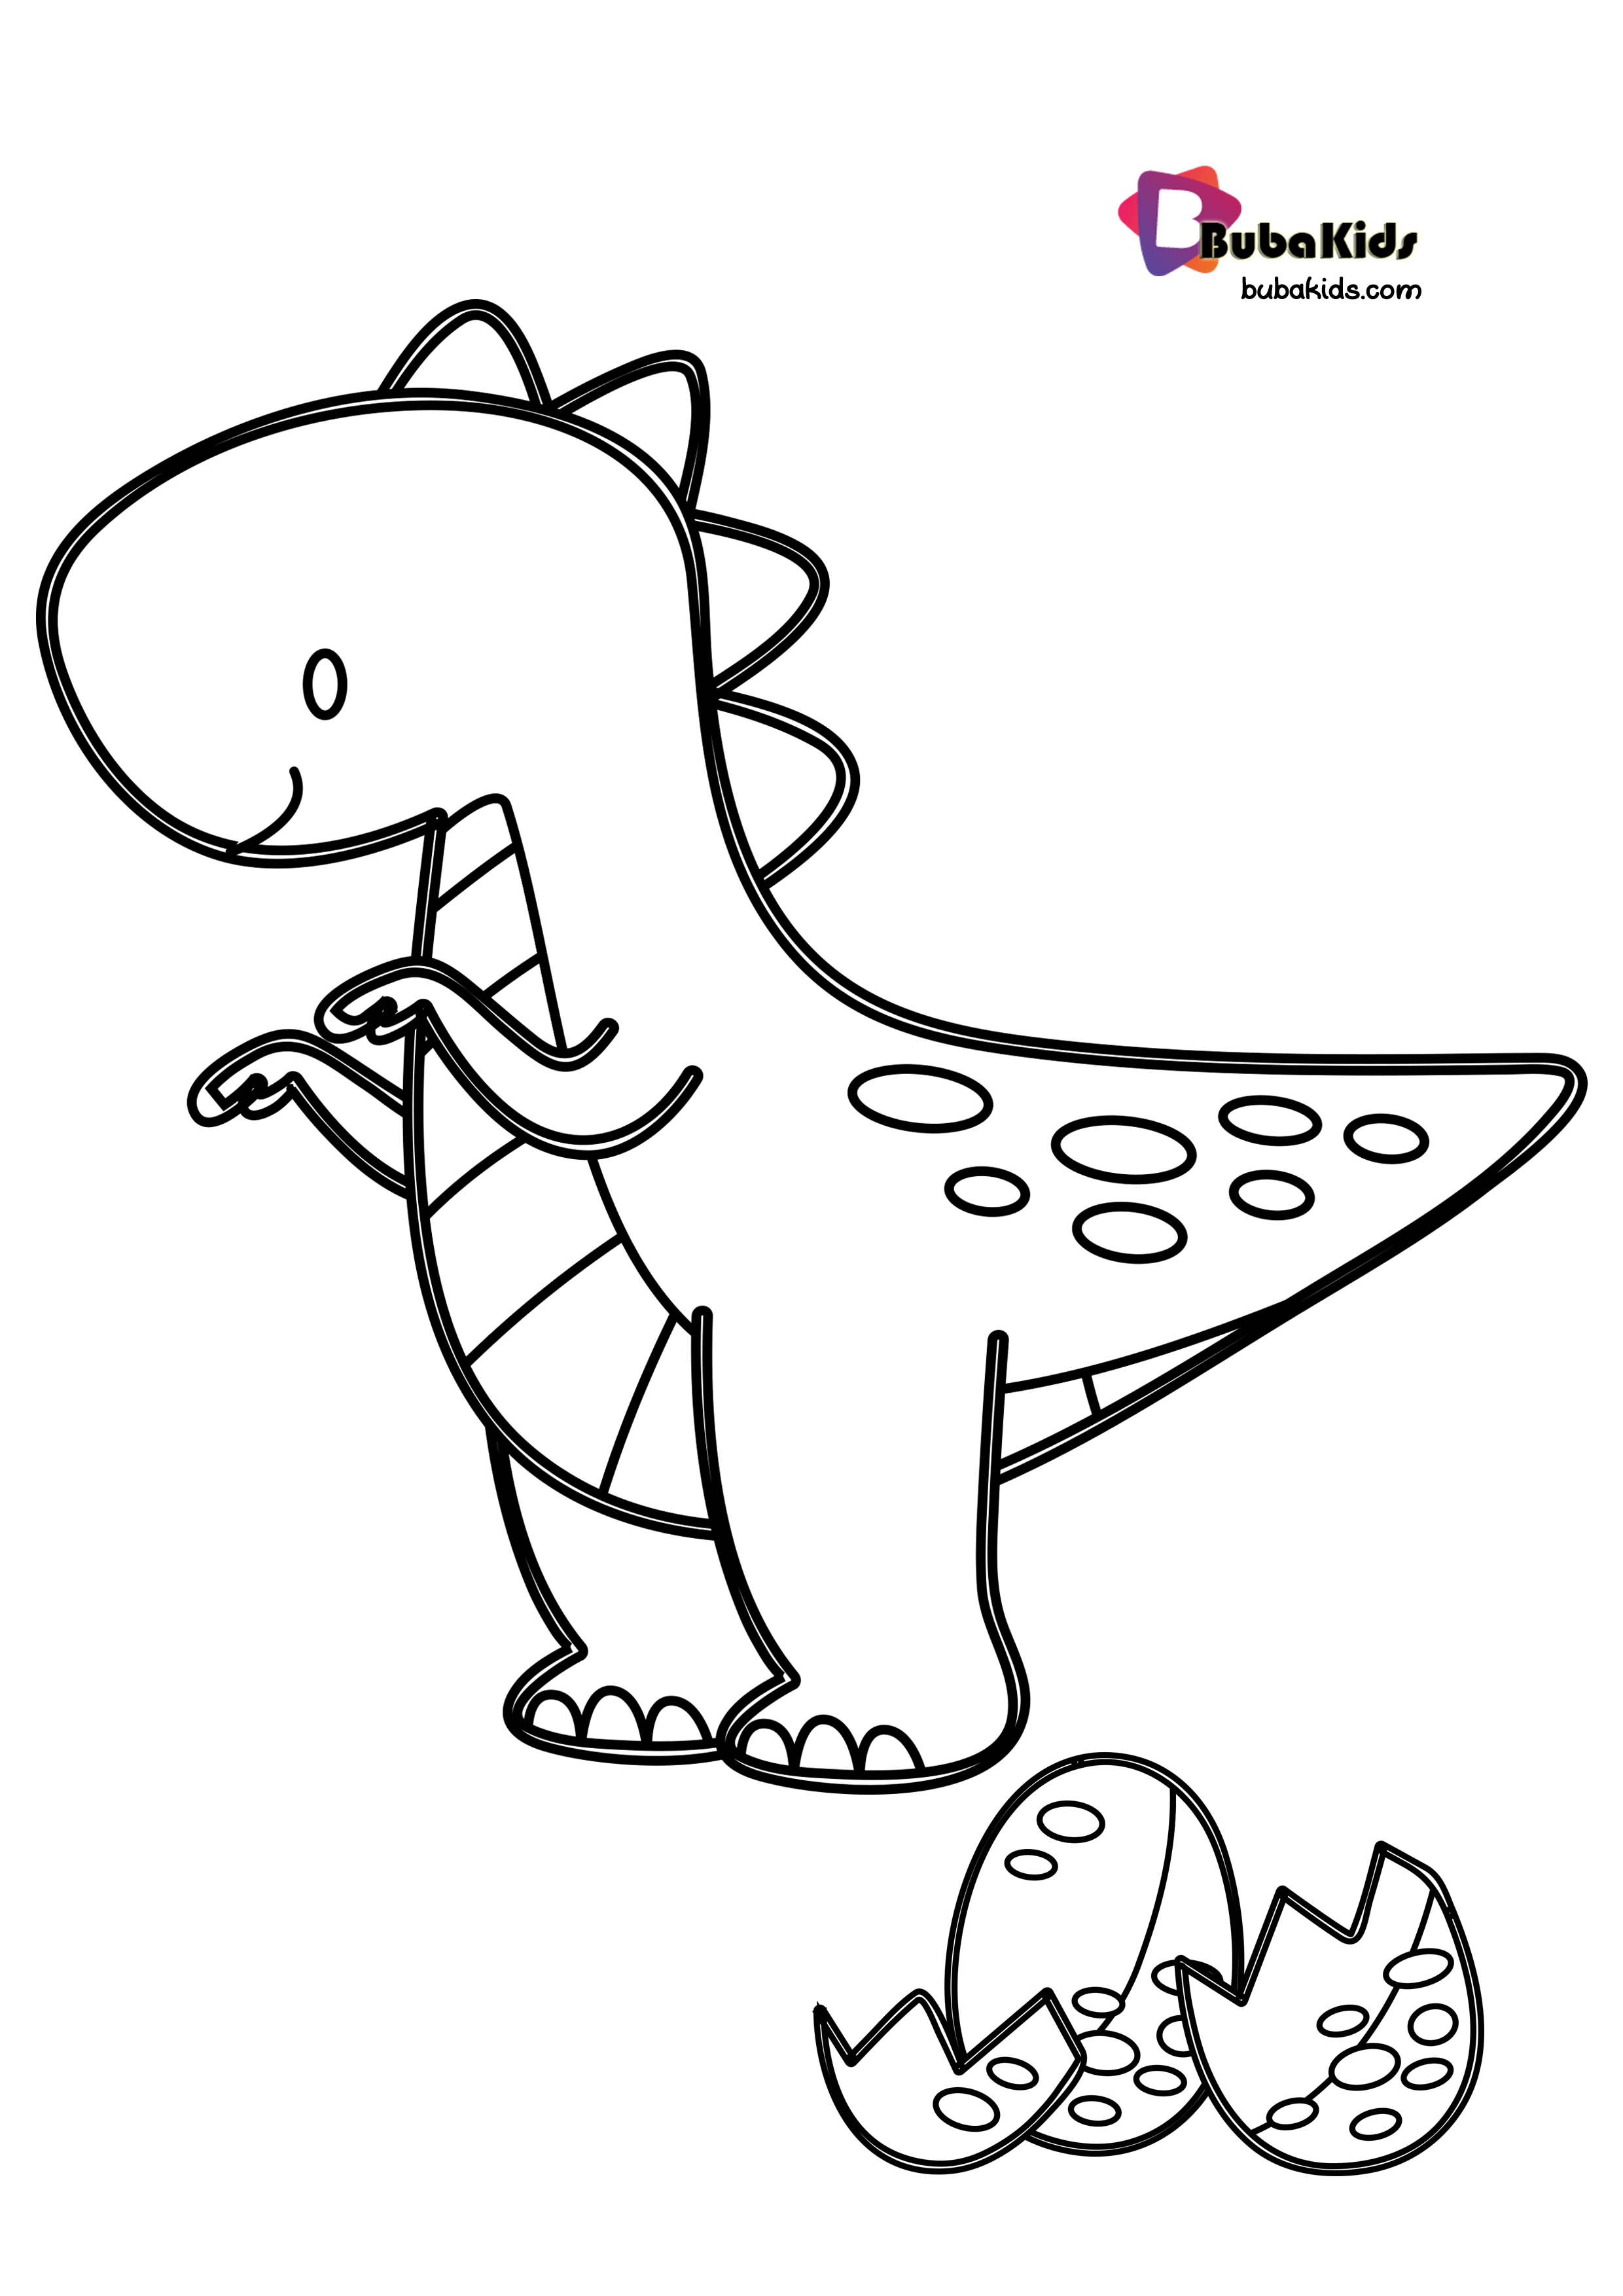 Baby TRex Coloring Page With Egg